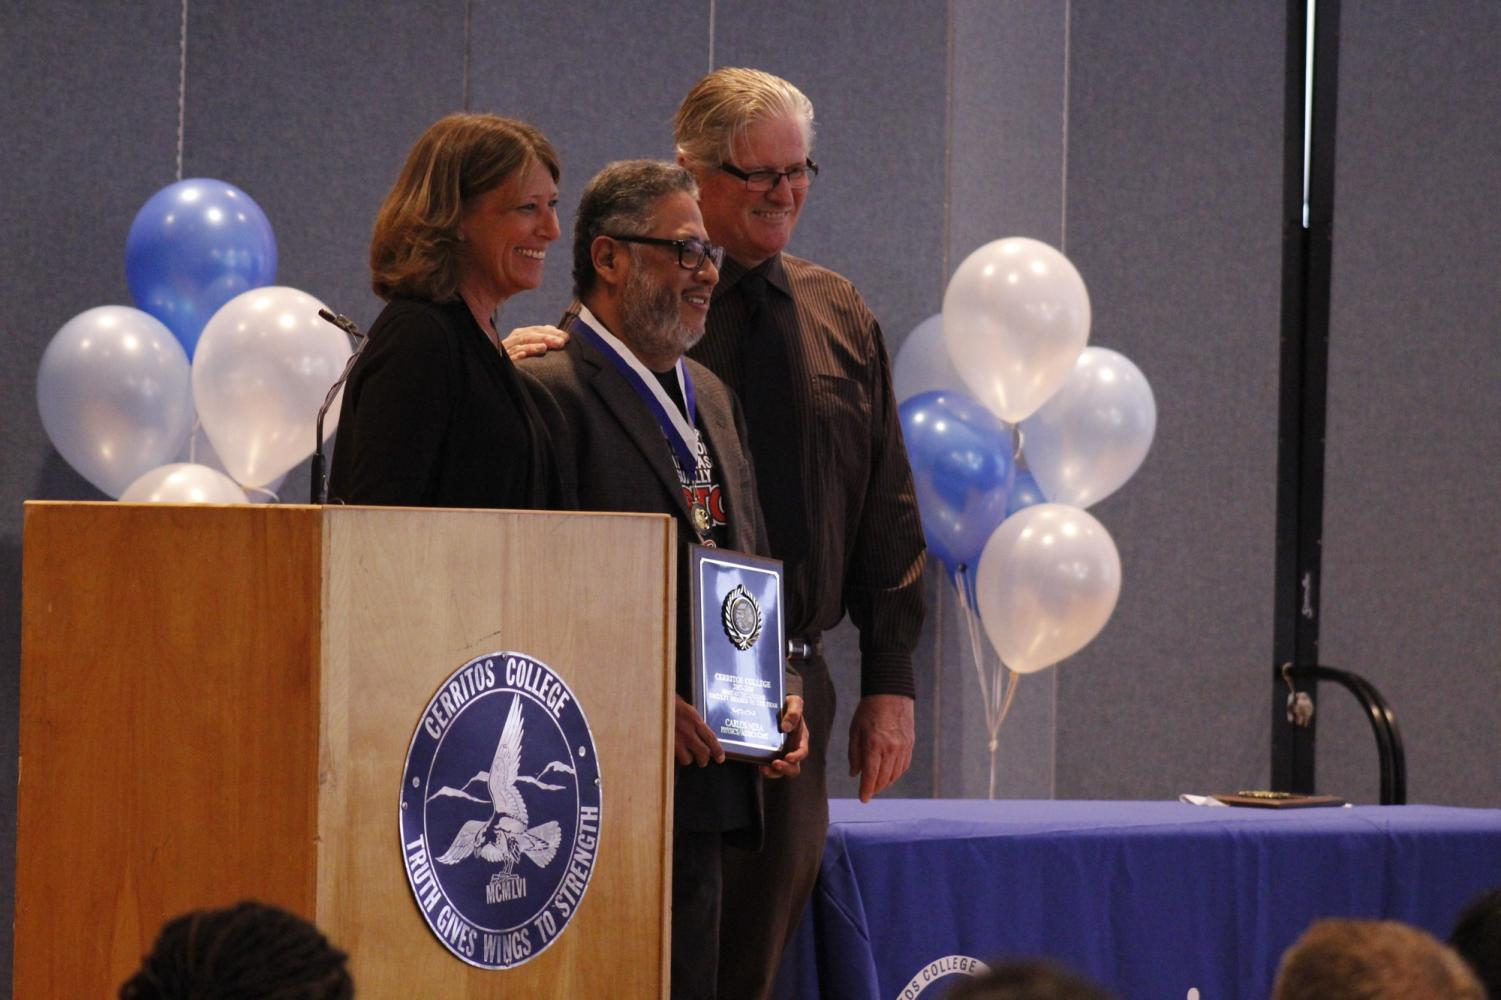 Physics professor Carlos Mera is awarded Most Outstanding Faculty. He was awarded this at the Cerritos College Outstanding Faculty Awards Ceremony on April 26 for the 2017-2018 academic year.